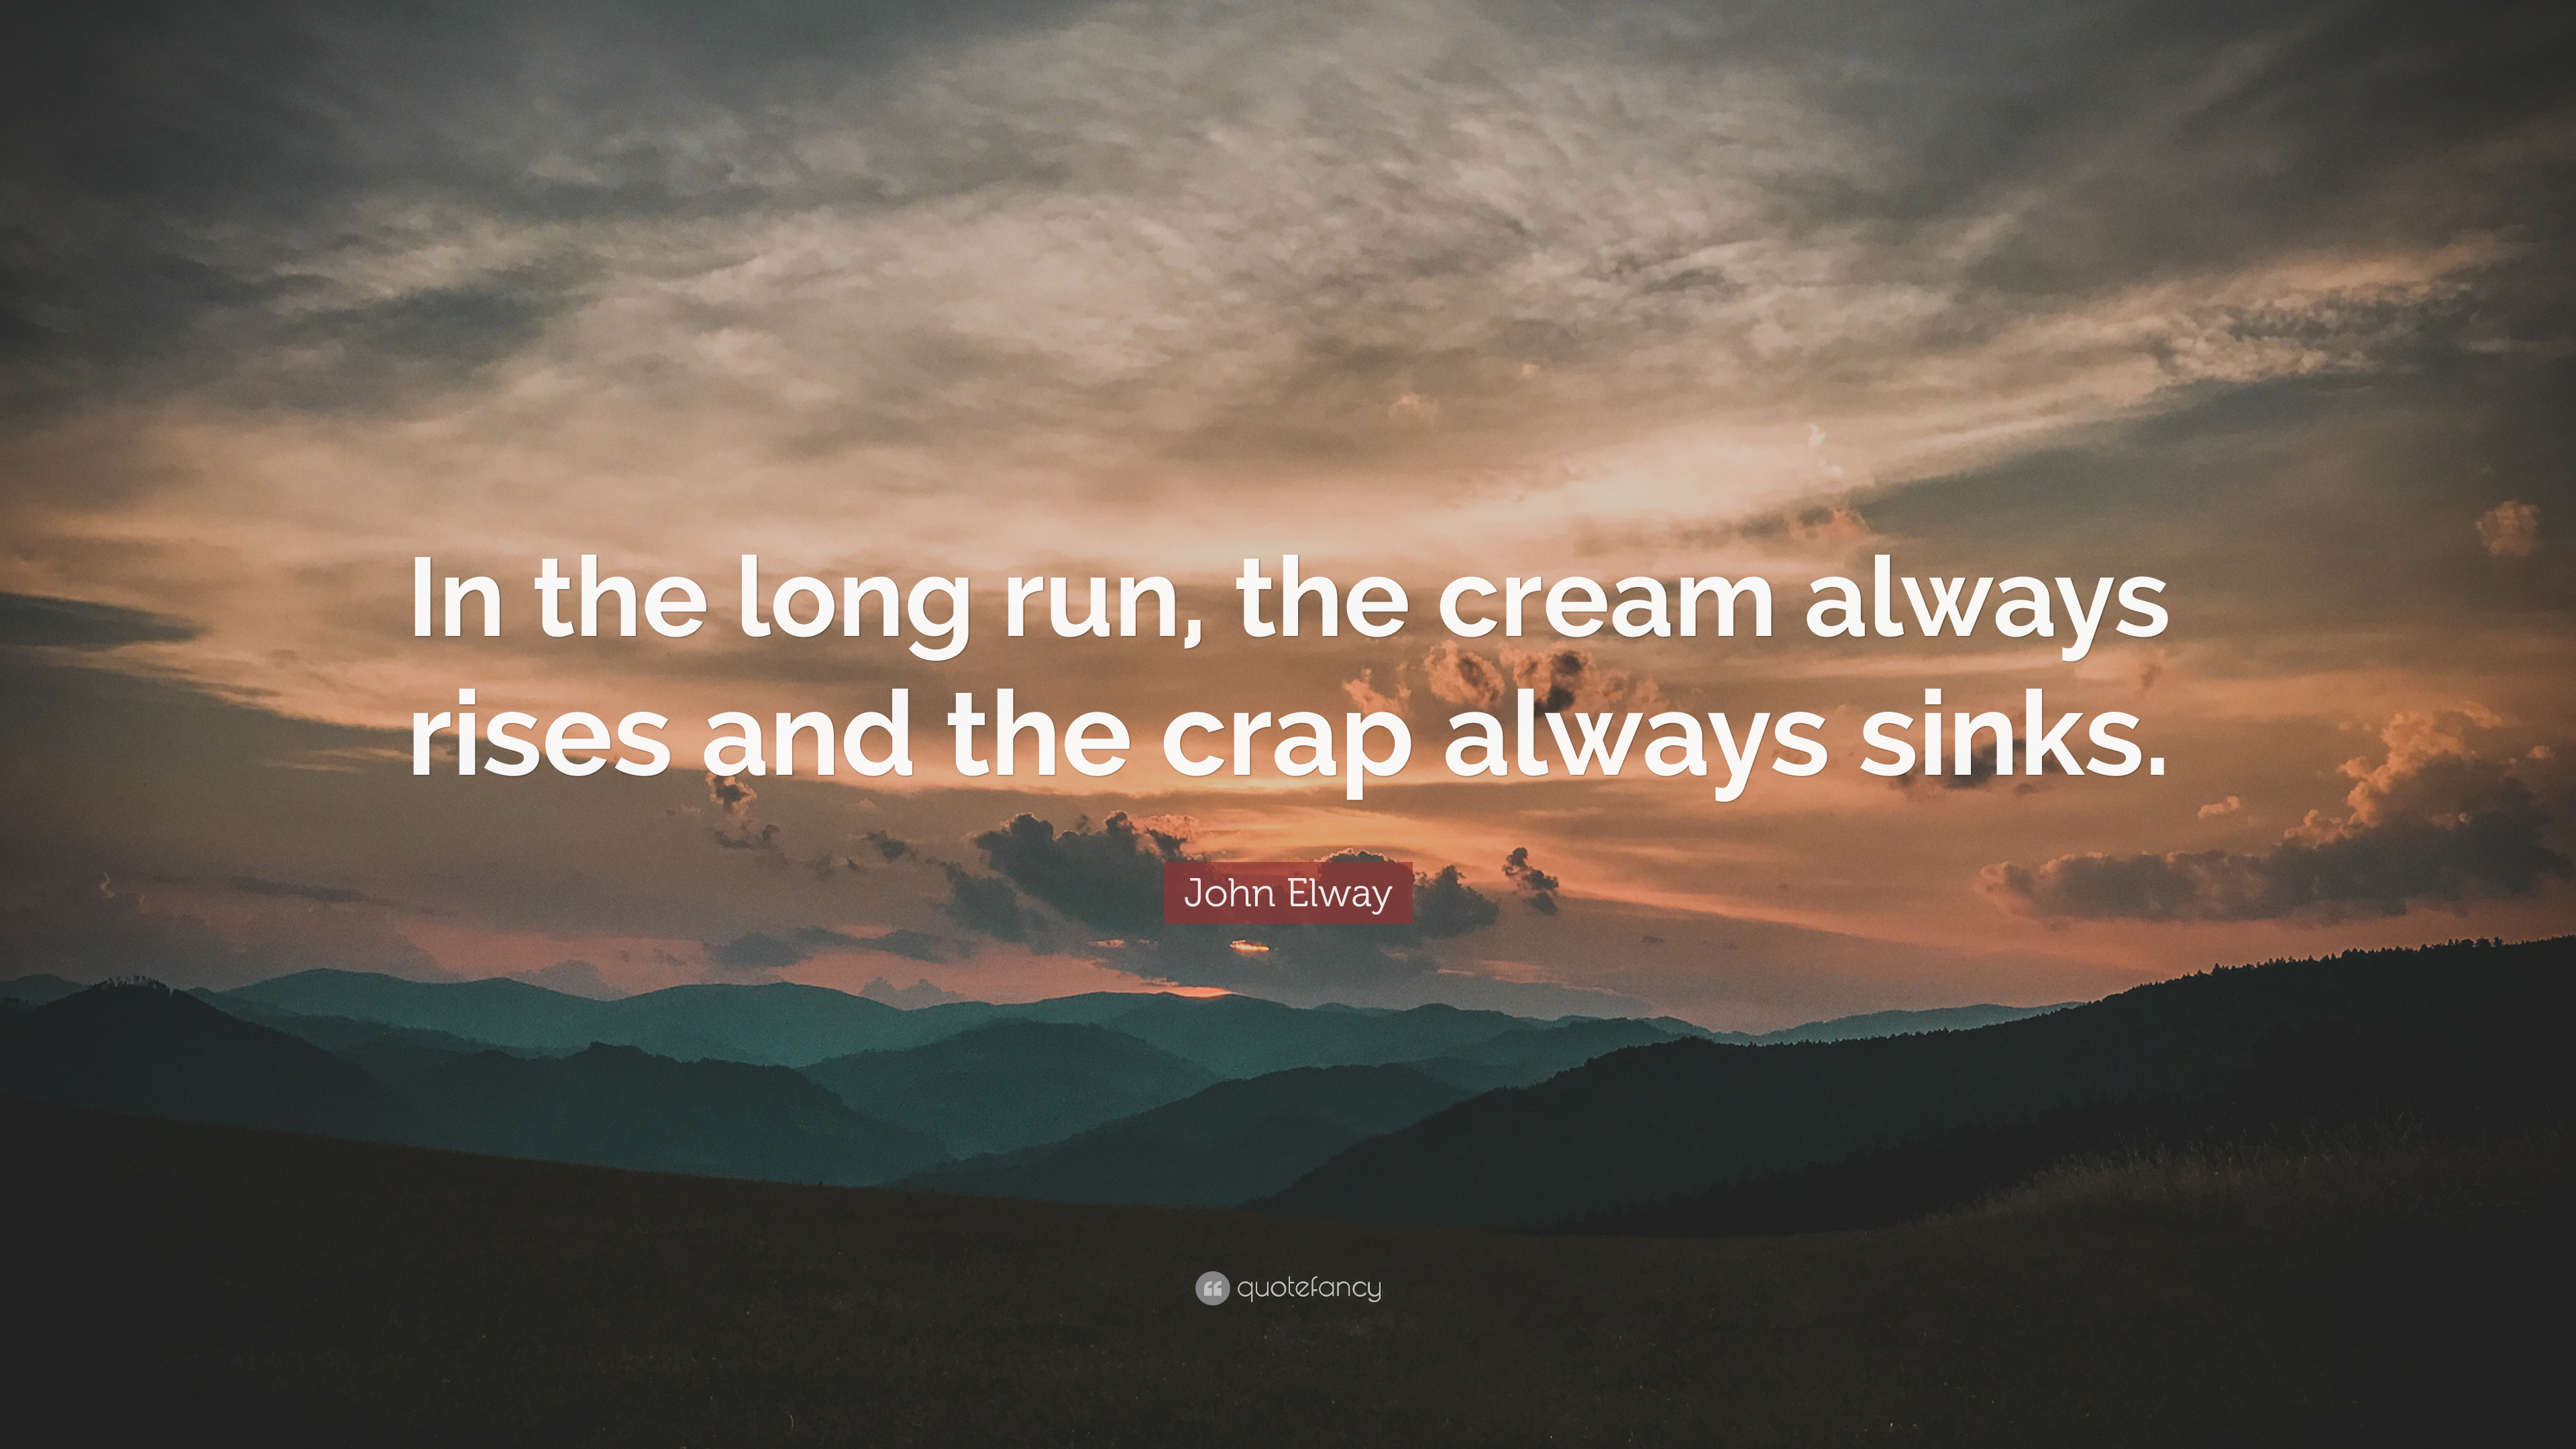 John Elway Quote In The Long Run The Cream Always Rises And The